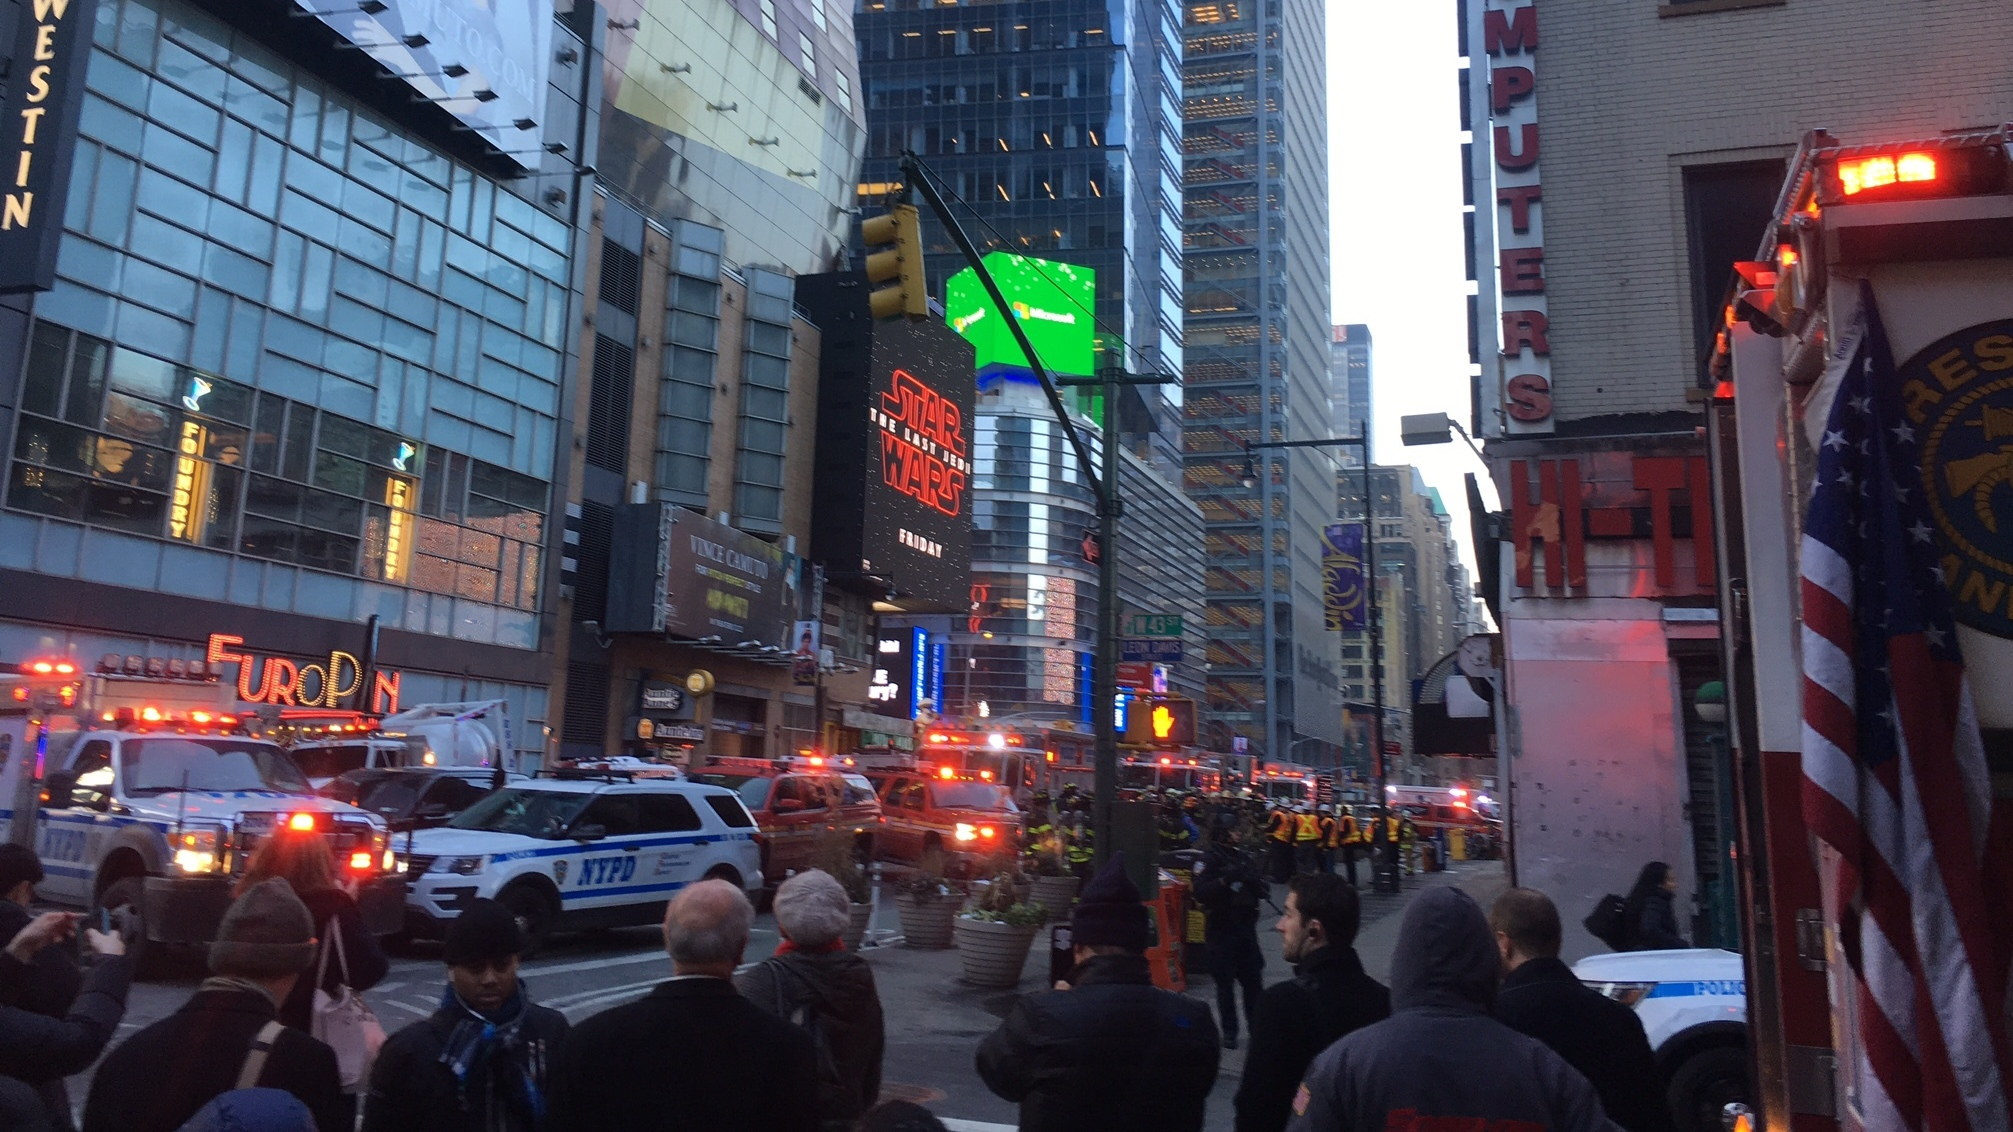 Service Changes for Commuters in Effect Following Reported Explosion in NYC